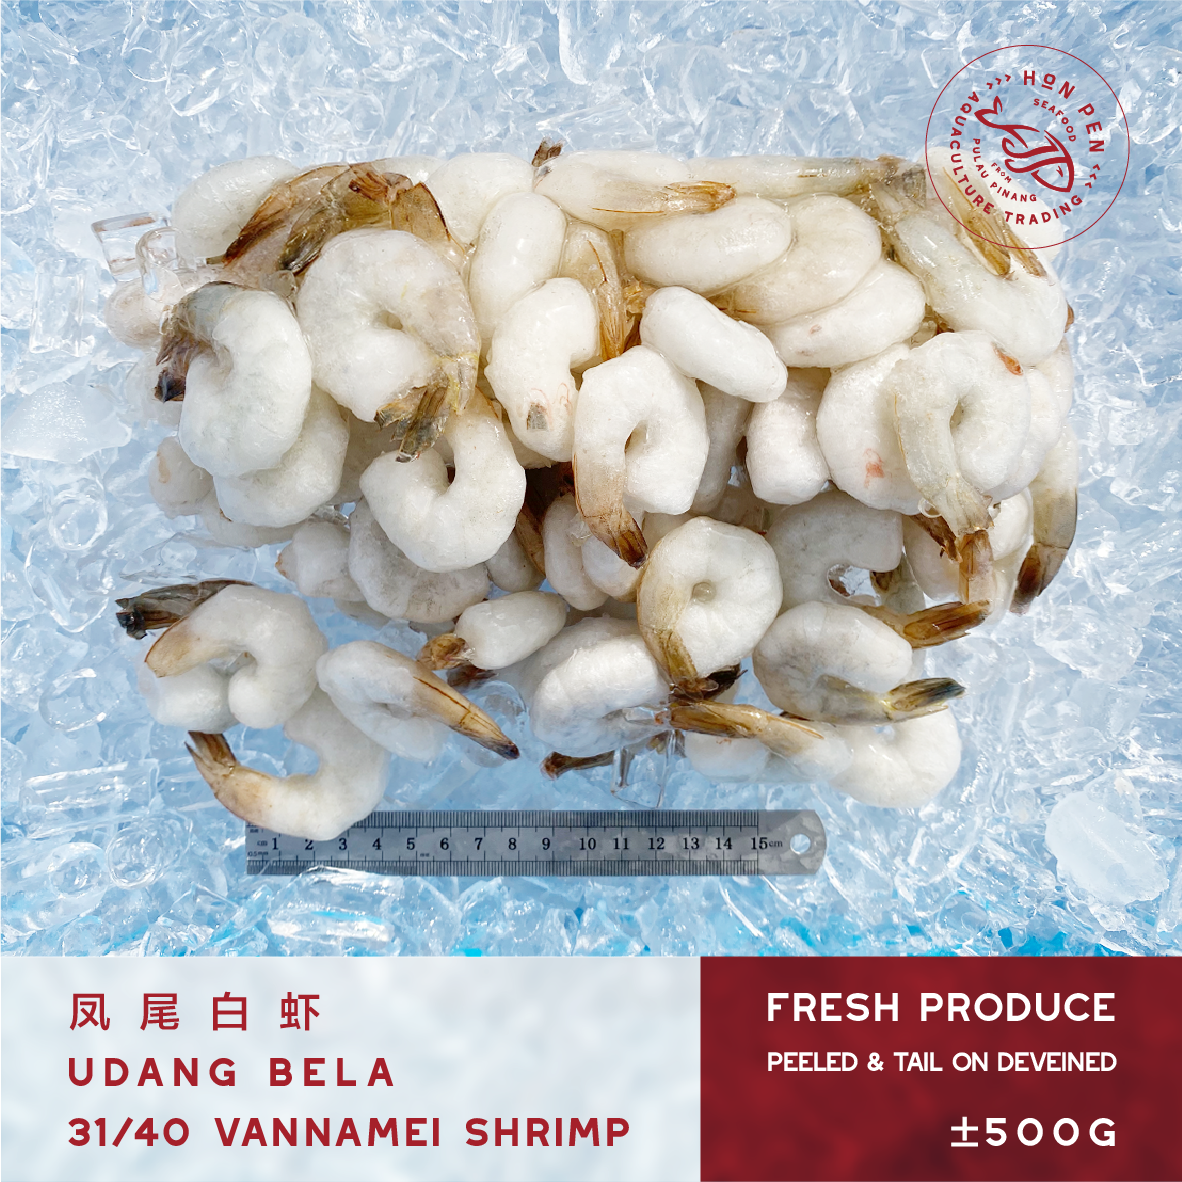 VANNAMEI SHRIMP 31/40 凤尾白虾 UDANG BELA (Peeled & tail on deveined) ±500g